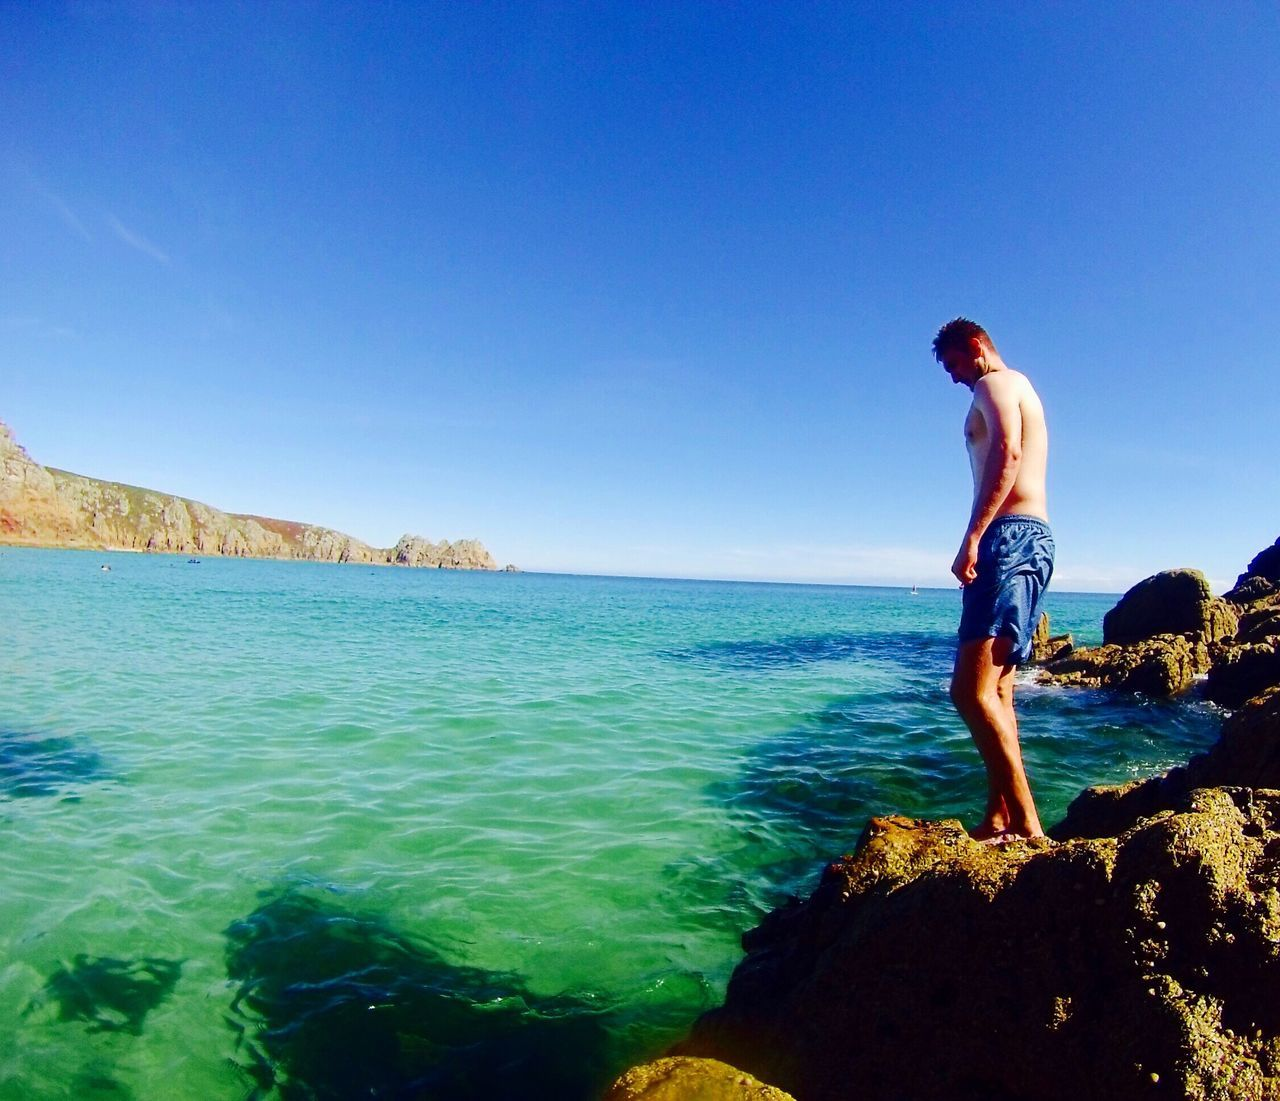 water, real people, sea, rock - object, one person, full length, leisure activity, standing, lifestyles, clear sky, nature, shirtless, day, blue, scenics, beauty in nature, horizon over water, outdoors, rear view, tranquil scene, sunlight, men, tranquility, sky, young adult, adult, people